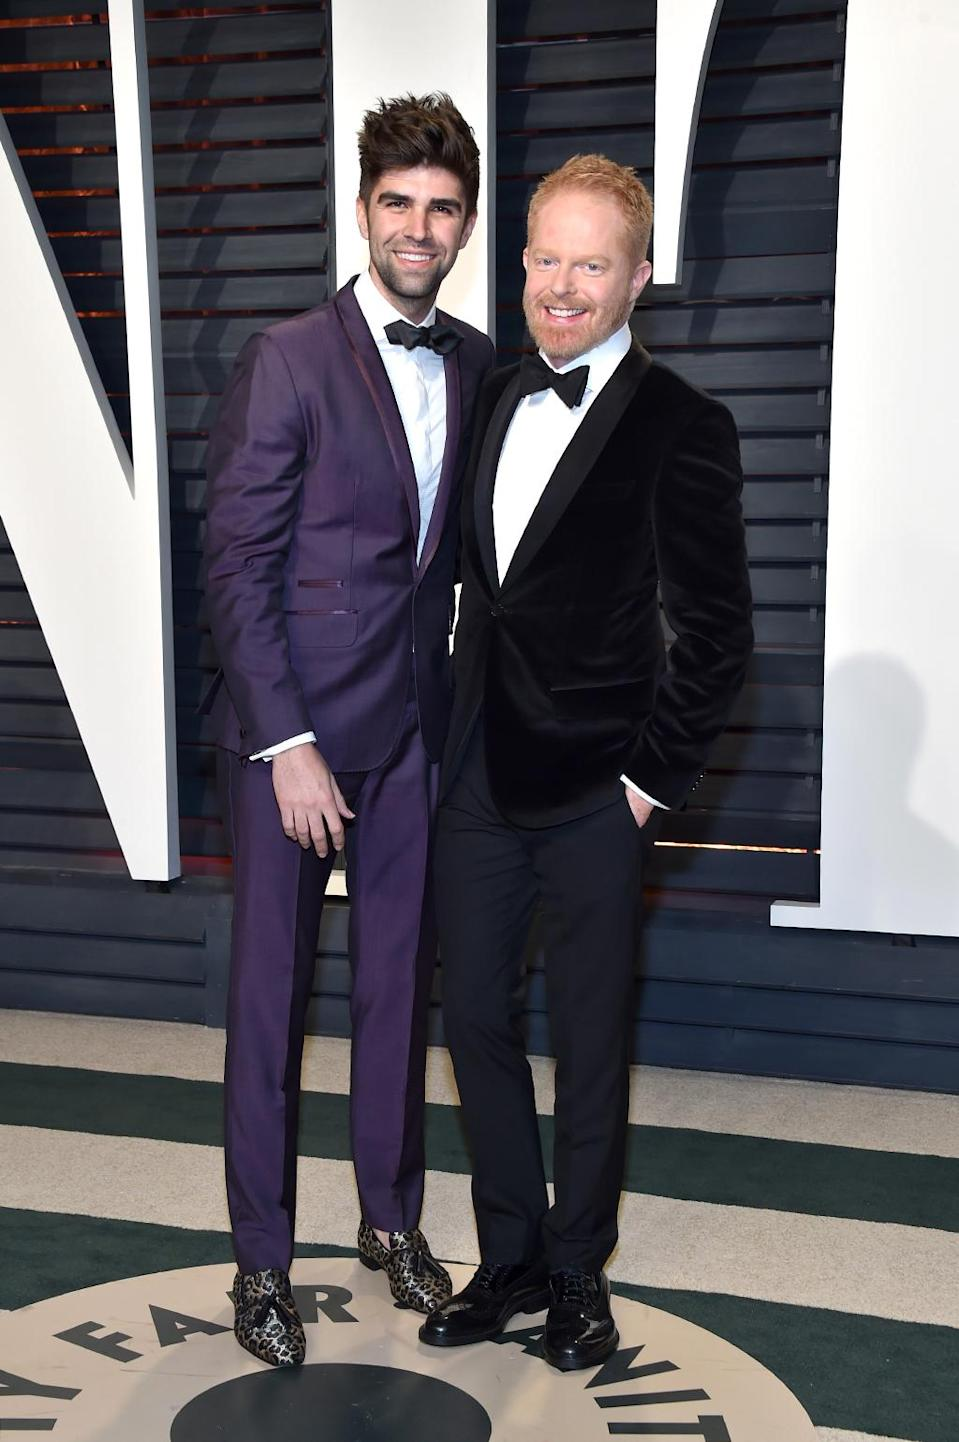 <p>Justin Mikita and Jesse Tyler Ferguson attend the 2017 Vanity Fair Oscar Party hosted by Graydon Carter at Wallis Annenberg Center for the Performing Arts on February 26, 2017 in Beverly Hills, California. (Photo by Pascal Le Segretain/Getty Images) </p>